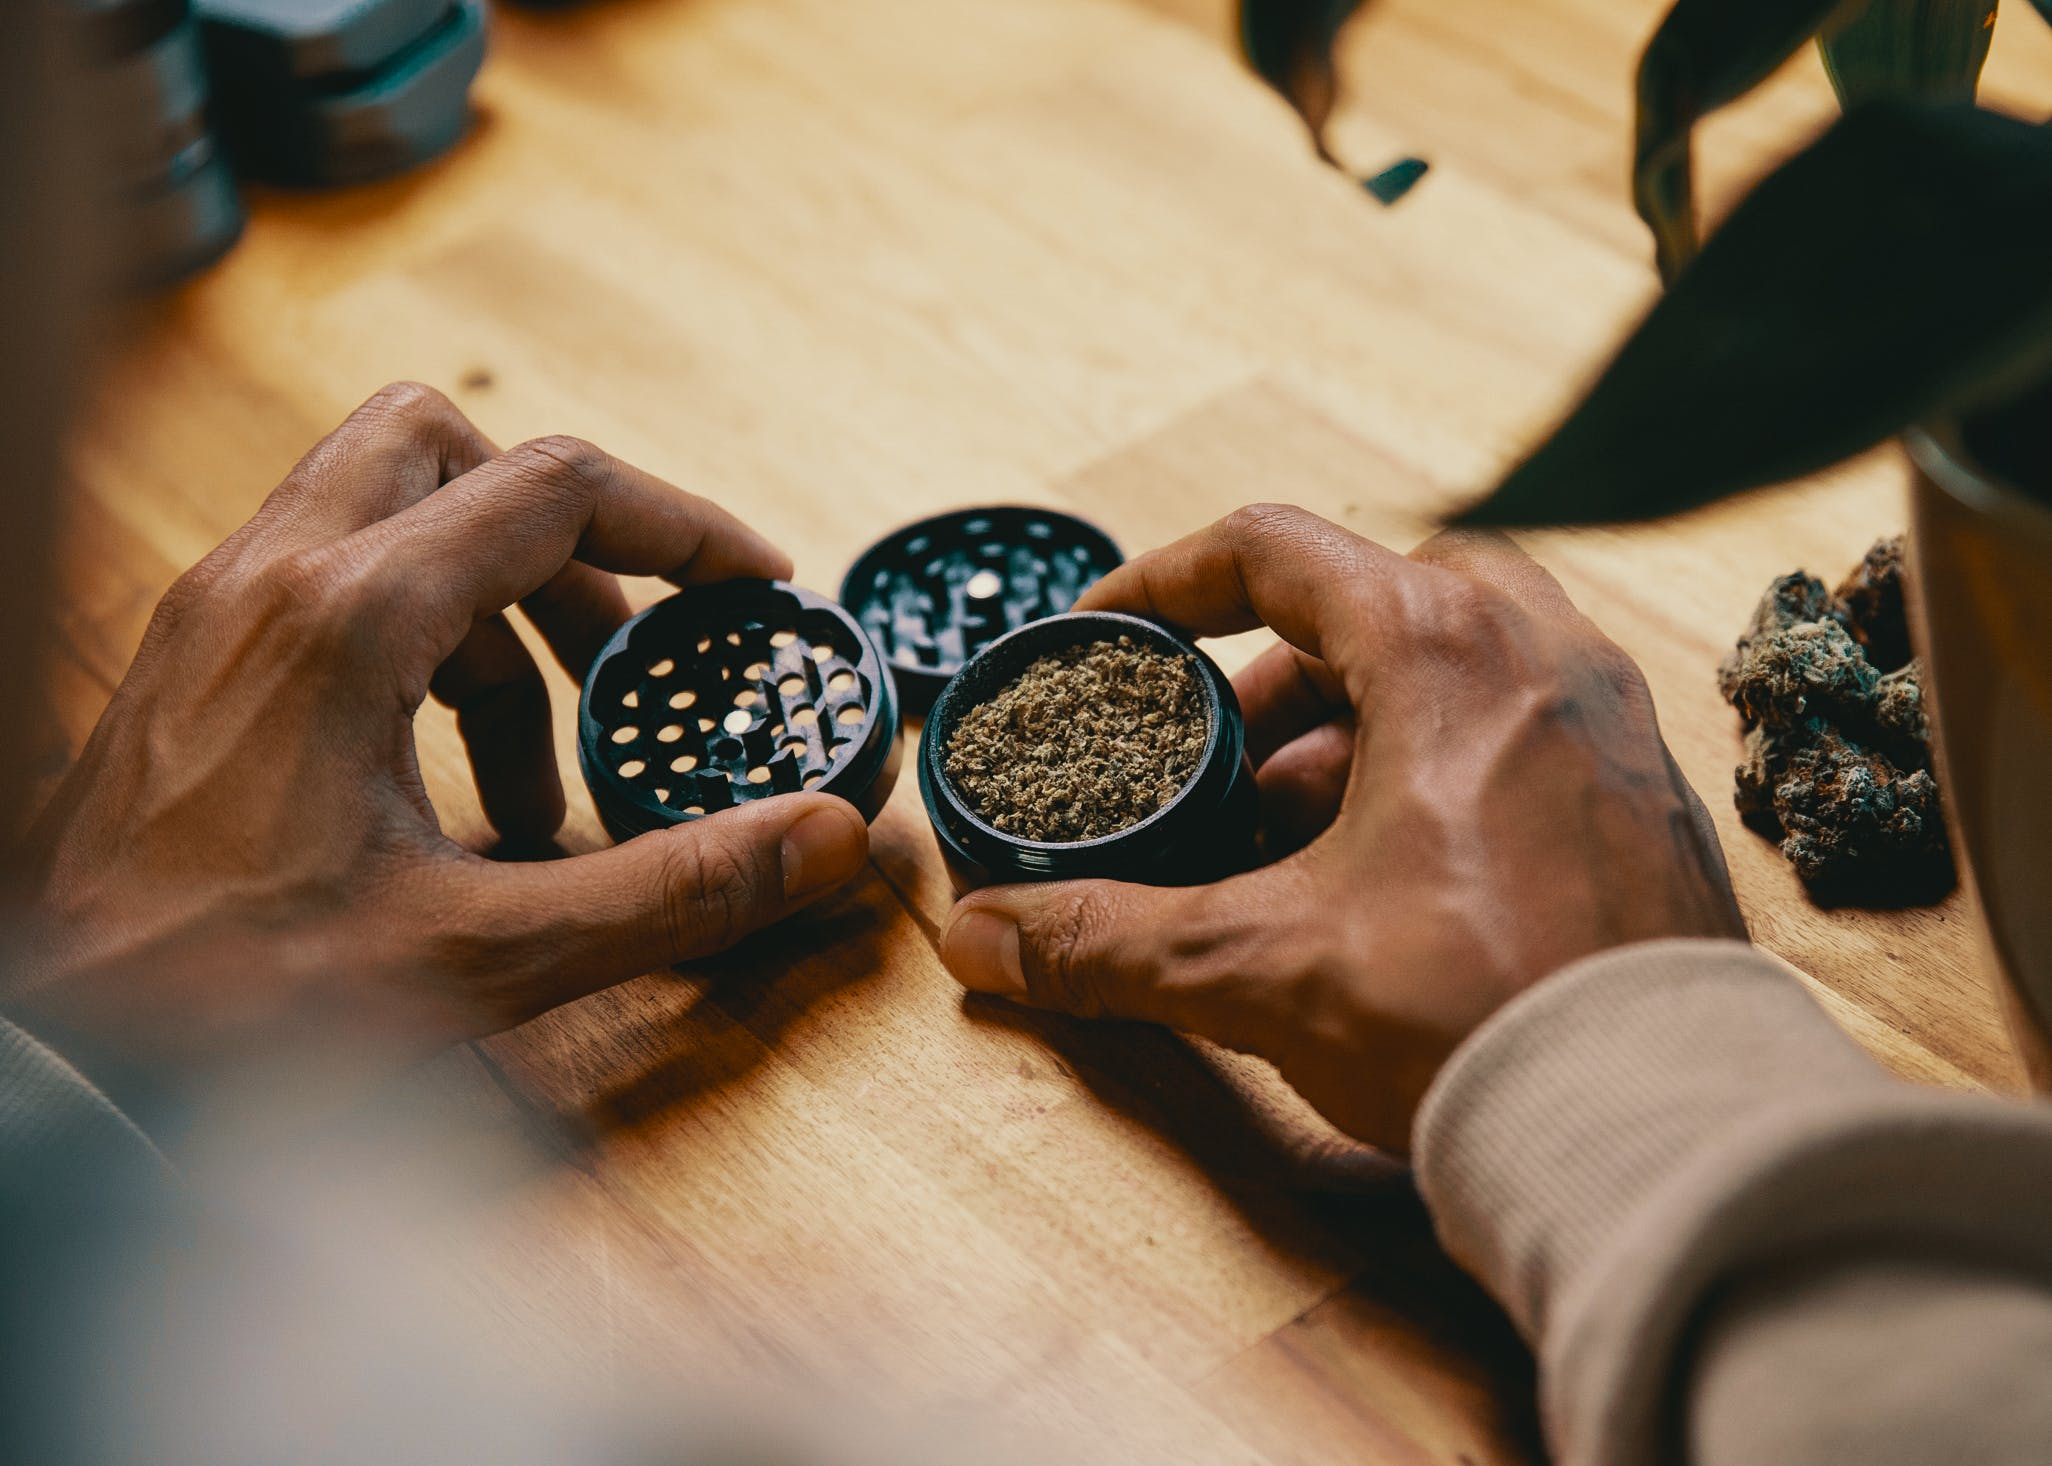 How to Get the Most Out Of Your Stash with the Best Weed Grinders. Here a man is shown with a grinder